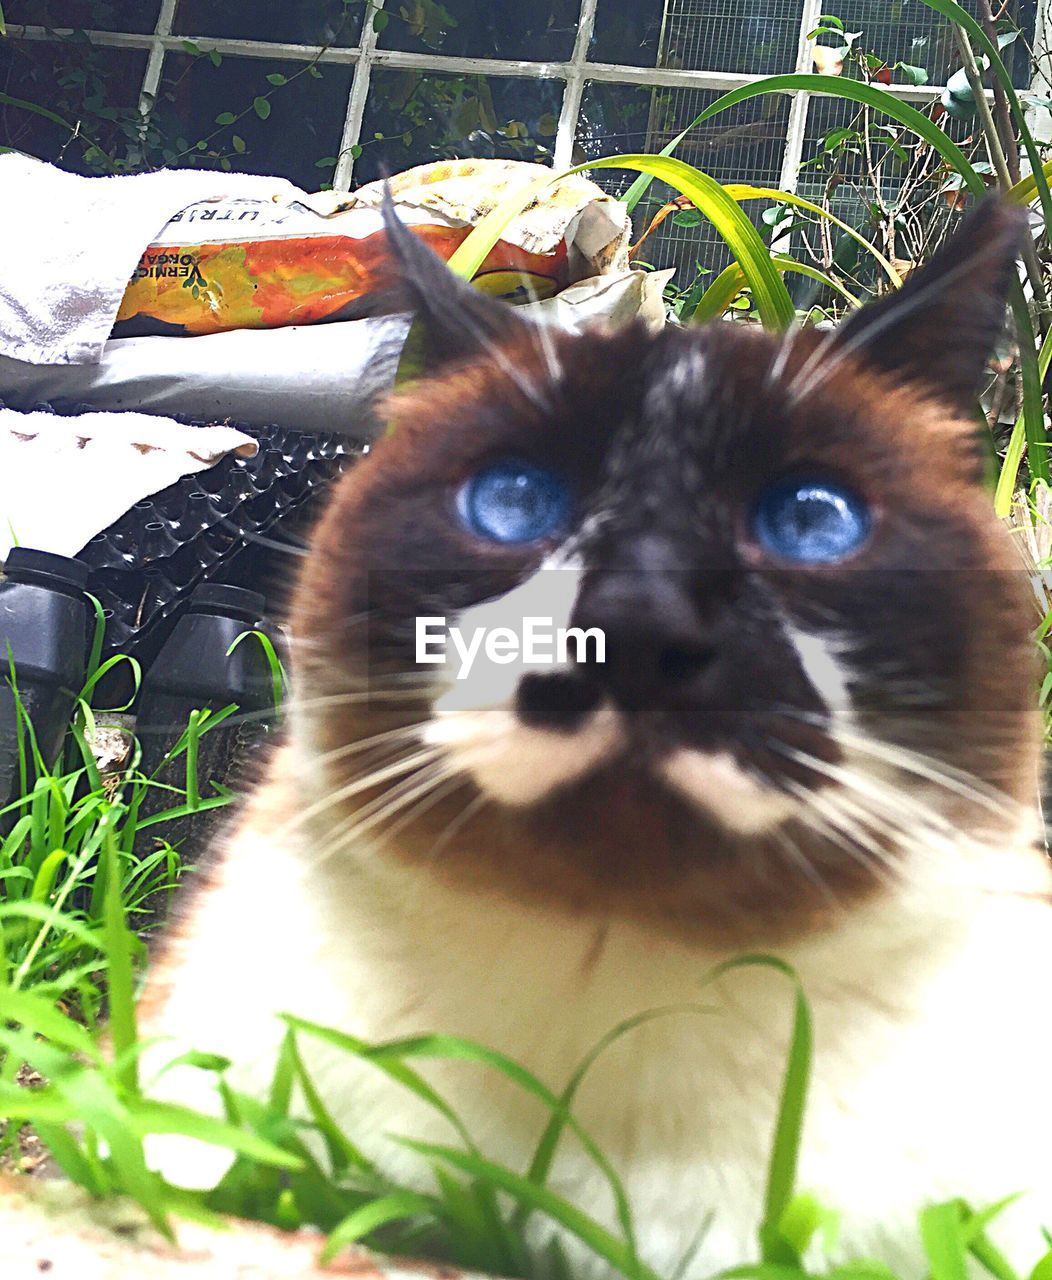 domestic cat, domestic animals, pets, mammal, animal themes, feline, one animal, cat, whisker, no people, portrait, looking at camera, day, plant, outdoors, grass, close-up, nature, siamese cat